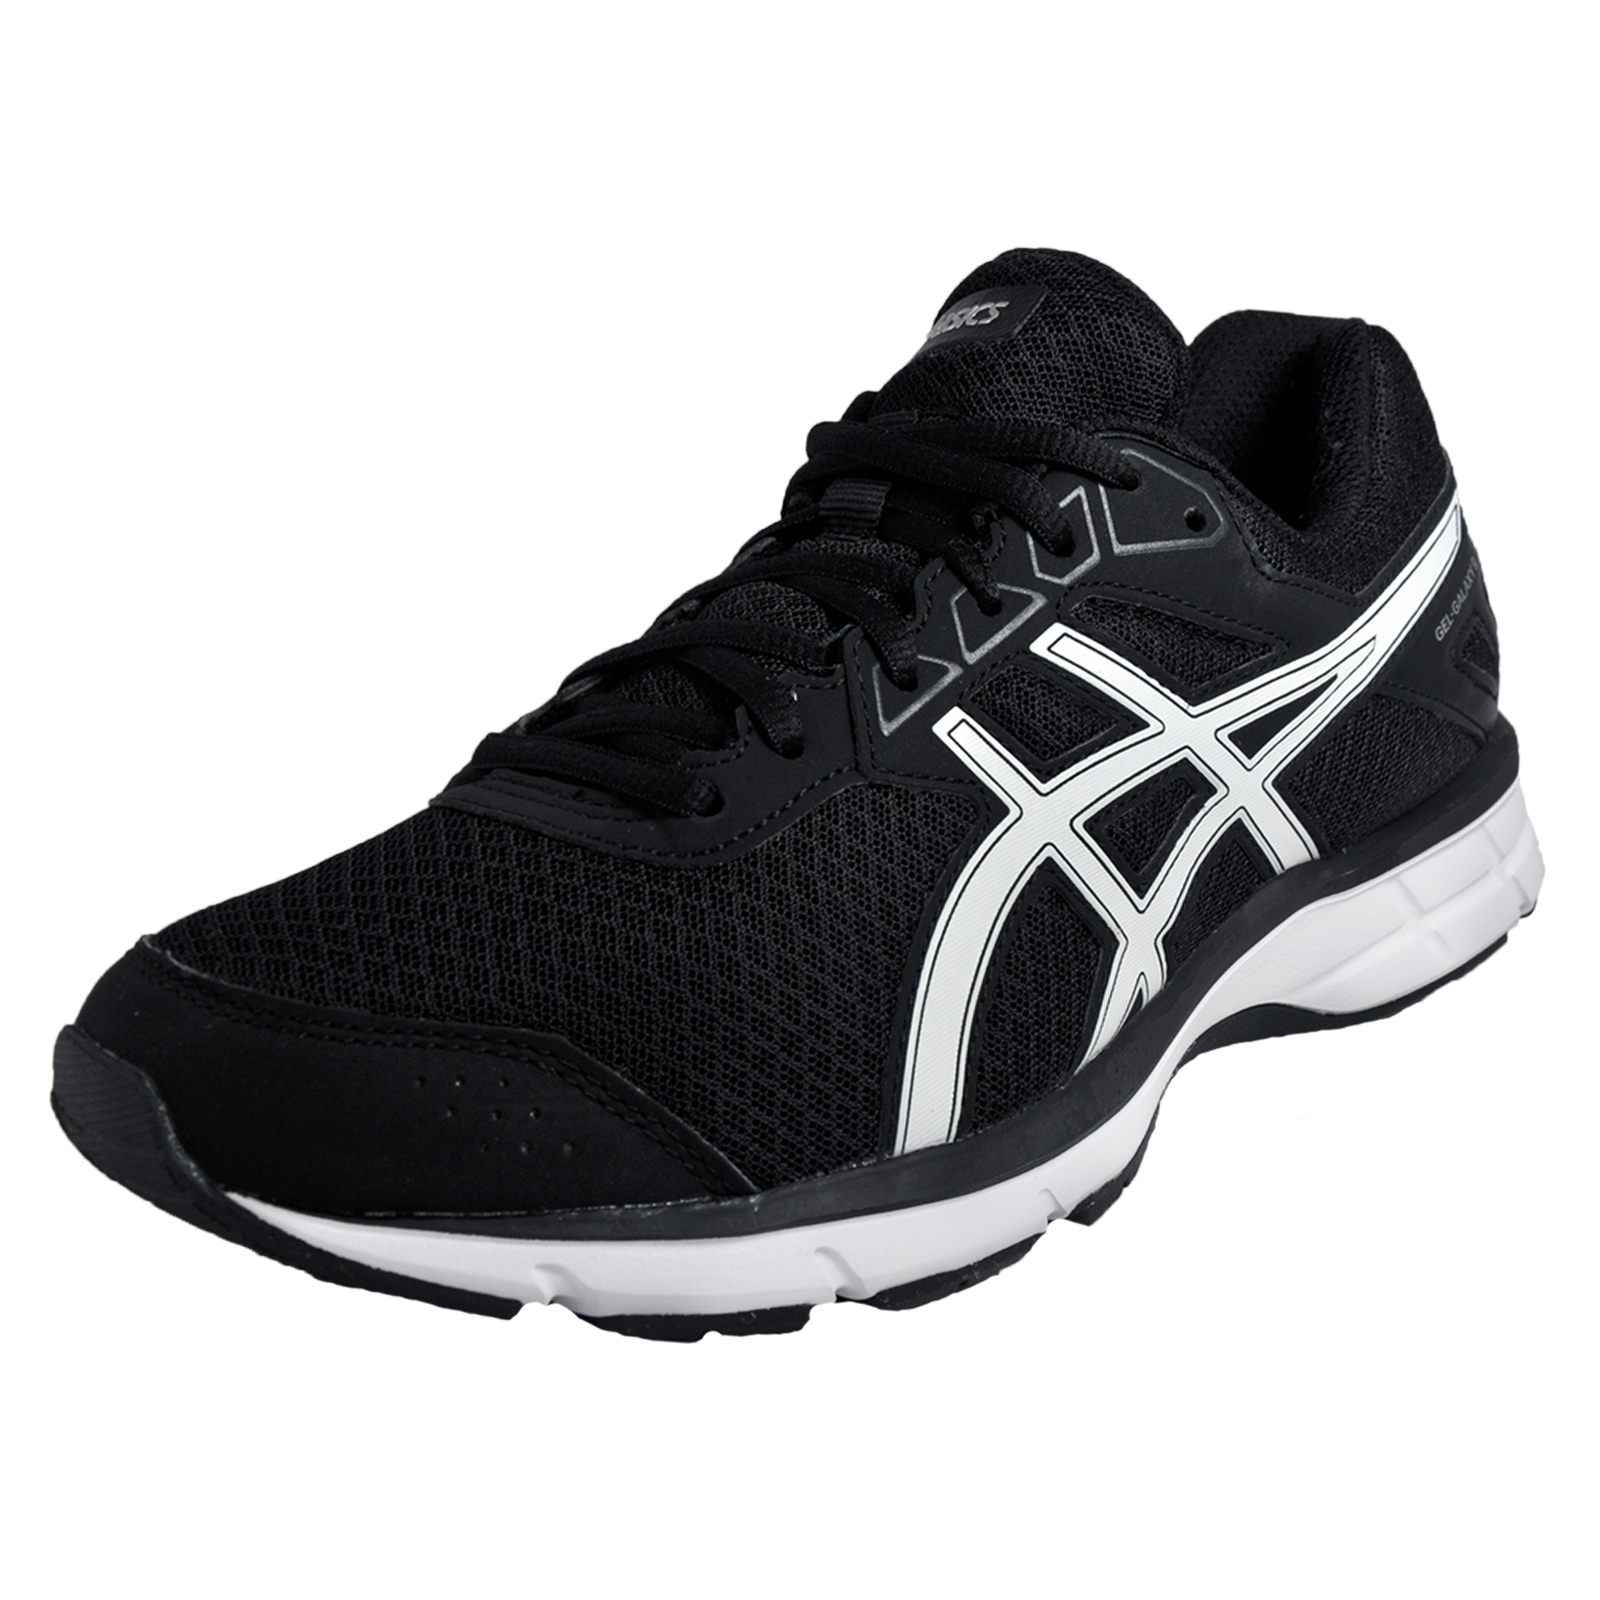 asics gel galaxy 9 womens ladies running shoes fitness gym. Black Bedroom Furniture Sets. Home Design Ideas